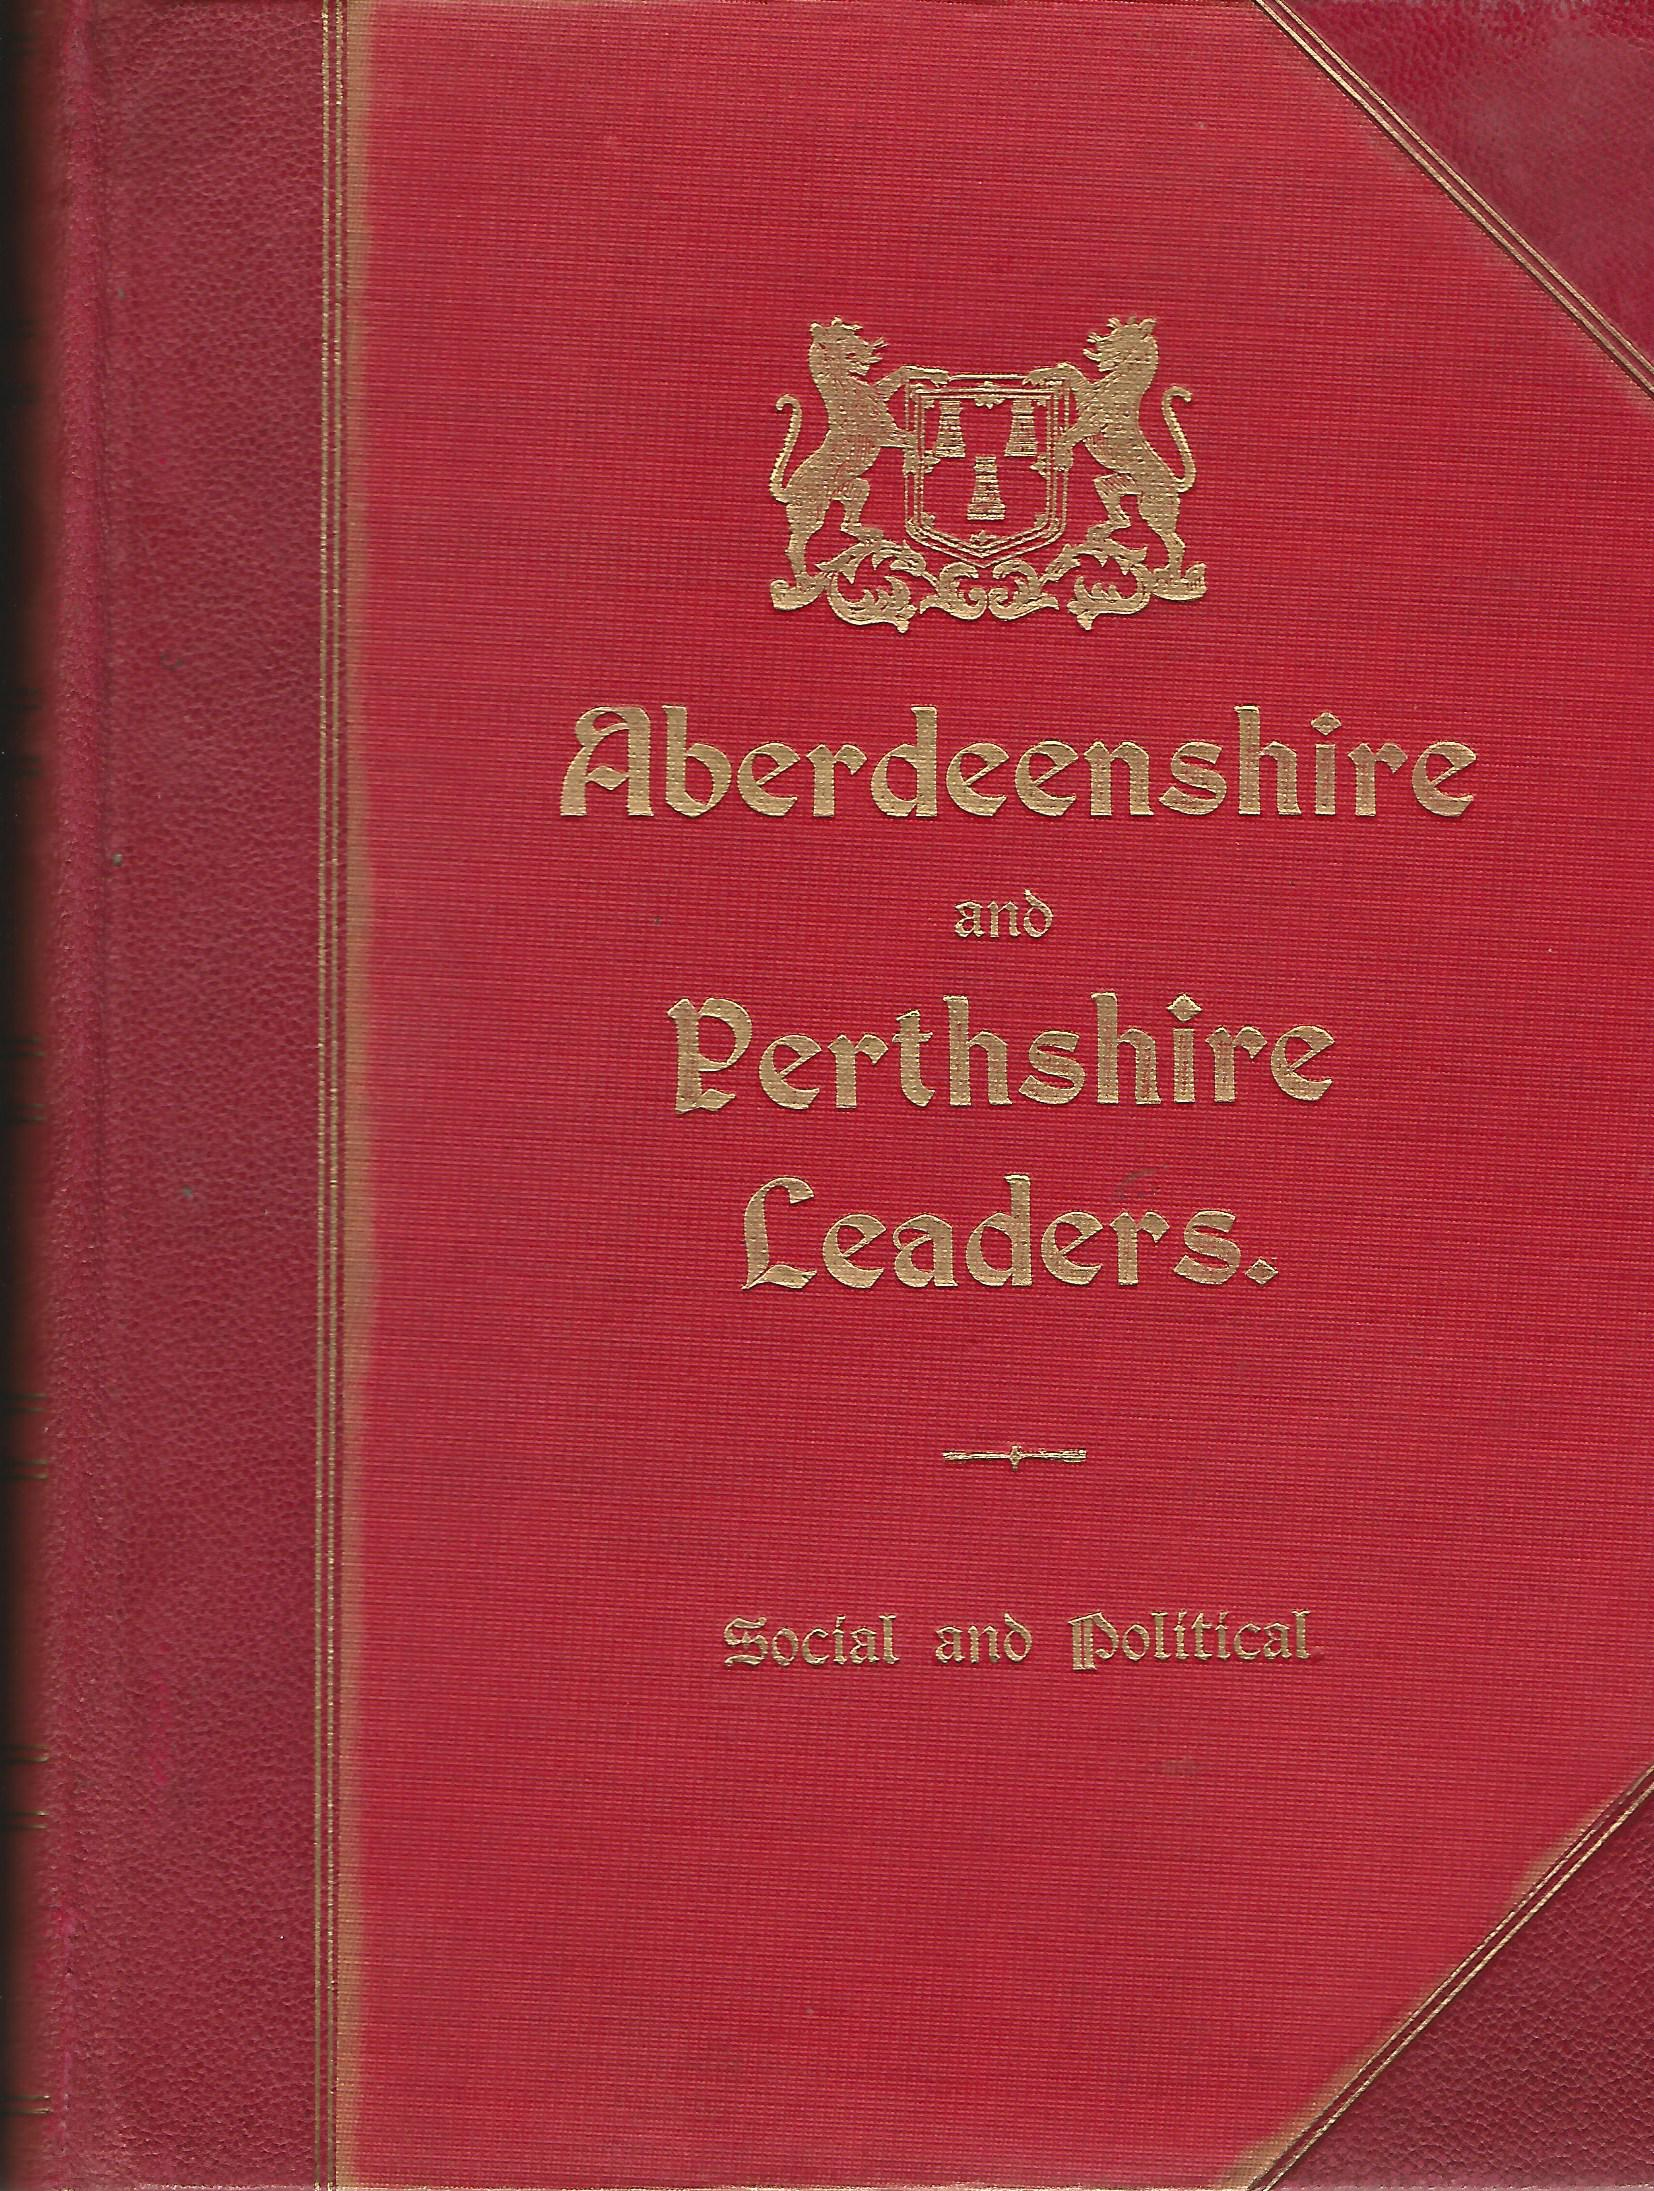 Aberdeenshire and Perthshire Leaders: Social and Political.